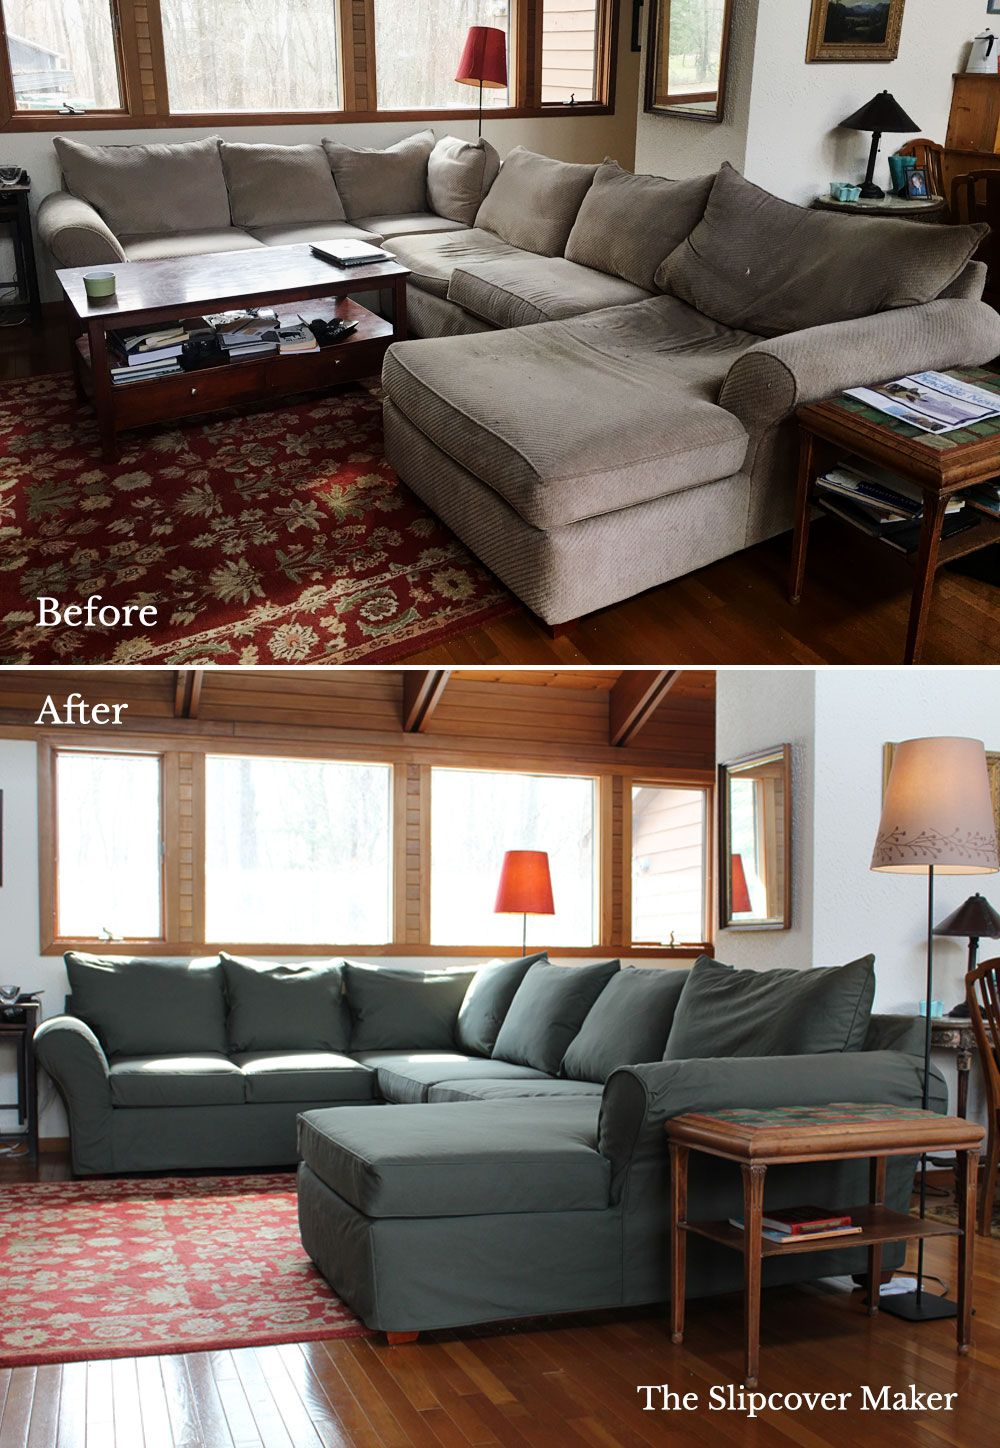 4 Money Saving Tips For Slipcovering Your Sectional Sectional Sofa Slipcovers Sectional Slipcover Furniture Covers Slipcovers